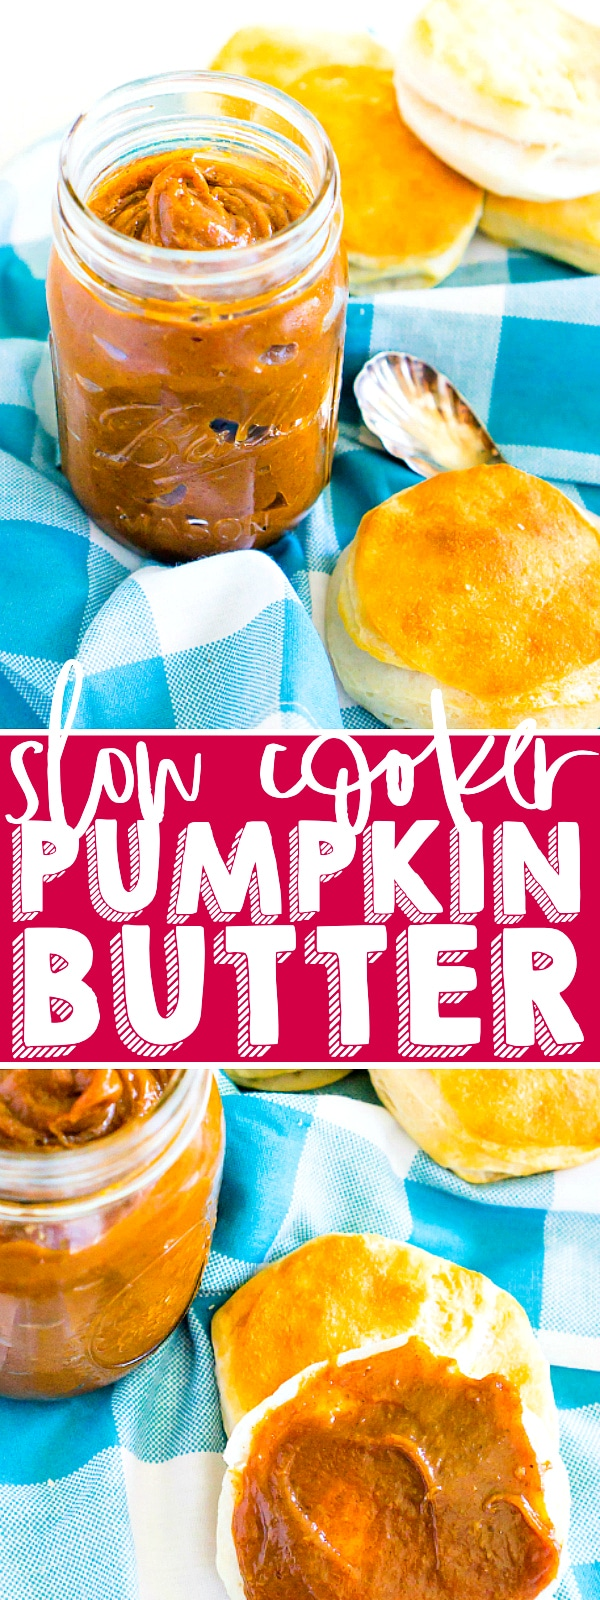 5 ingredient Slow Cooker Pumpkin Butter is absolutely addicting and a fall pumpkin recipe staple for us because it makes the perfect ingredient for fall baked goods, main dish recipes and even morning toast! | THE LOVE NERDS #pumpkinrecipe #thanksgivingrecipe #fallbaking